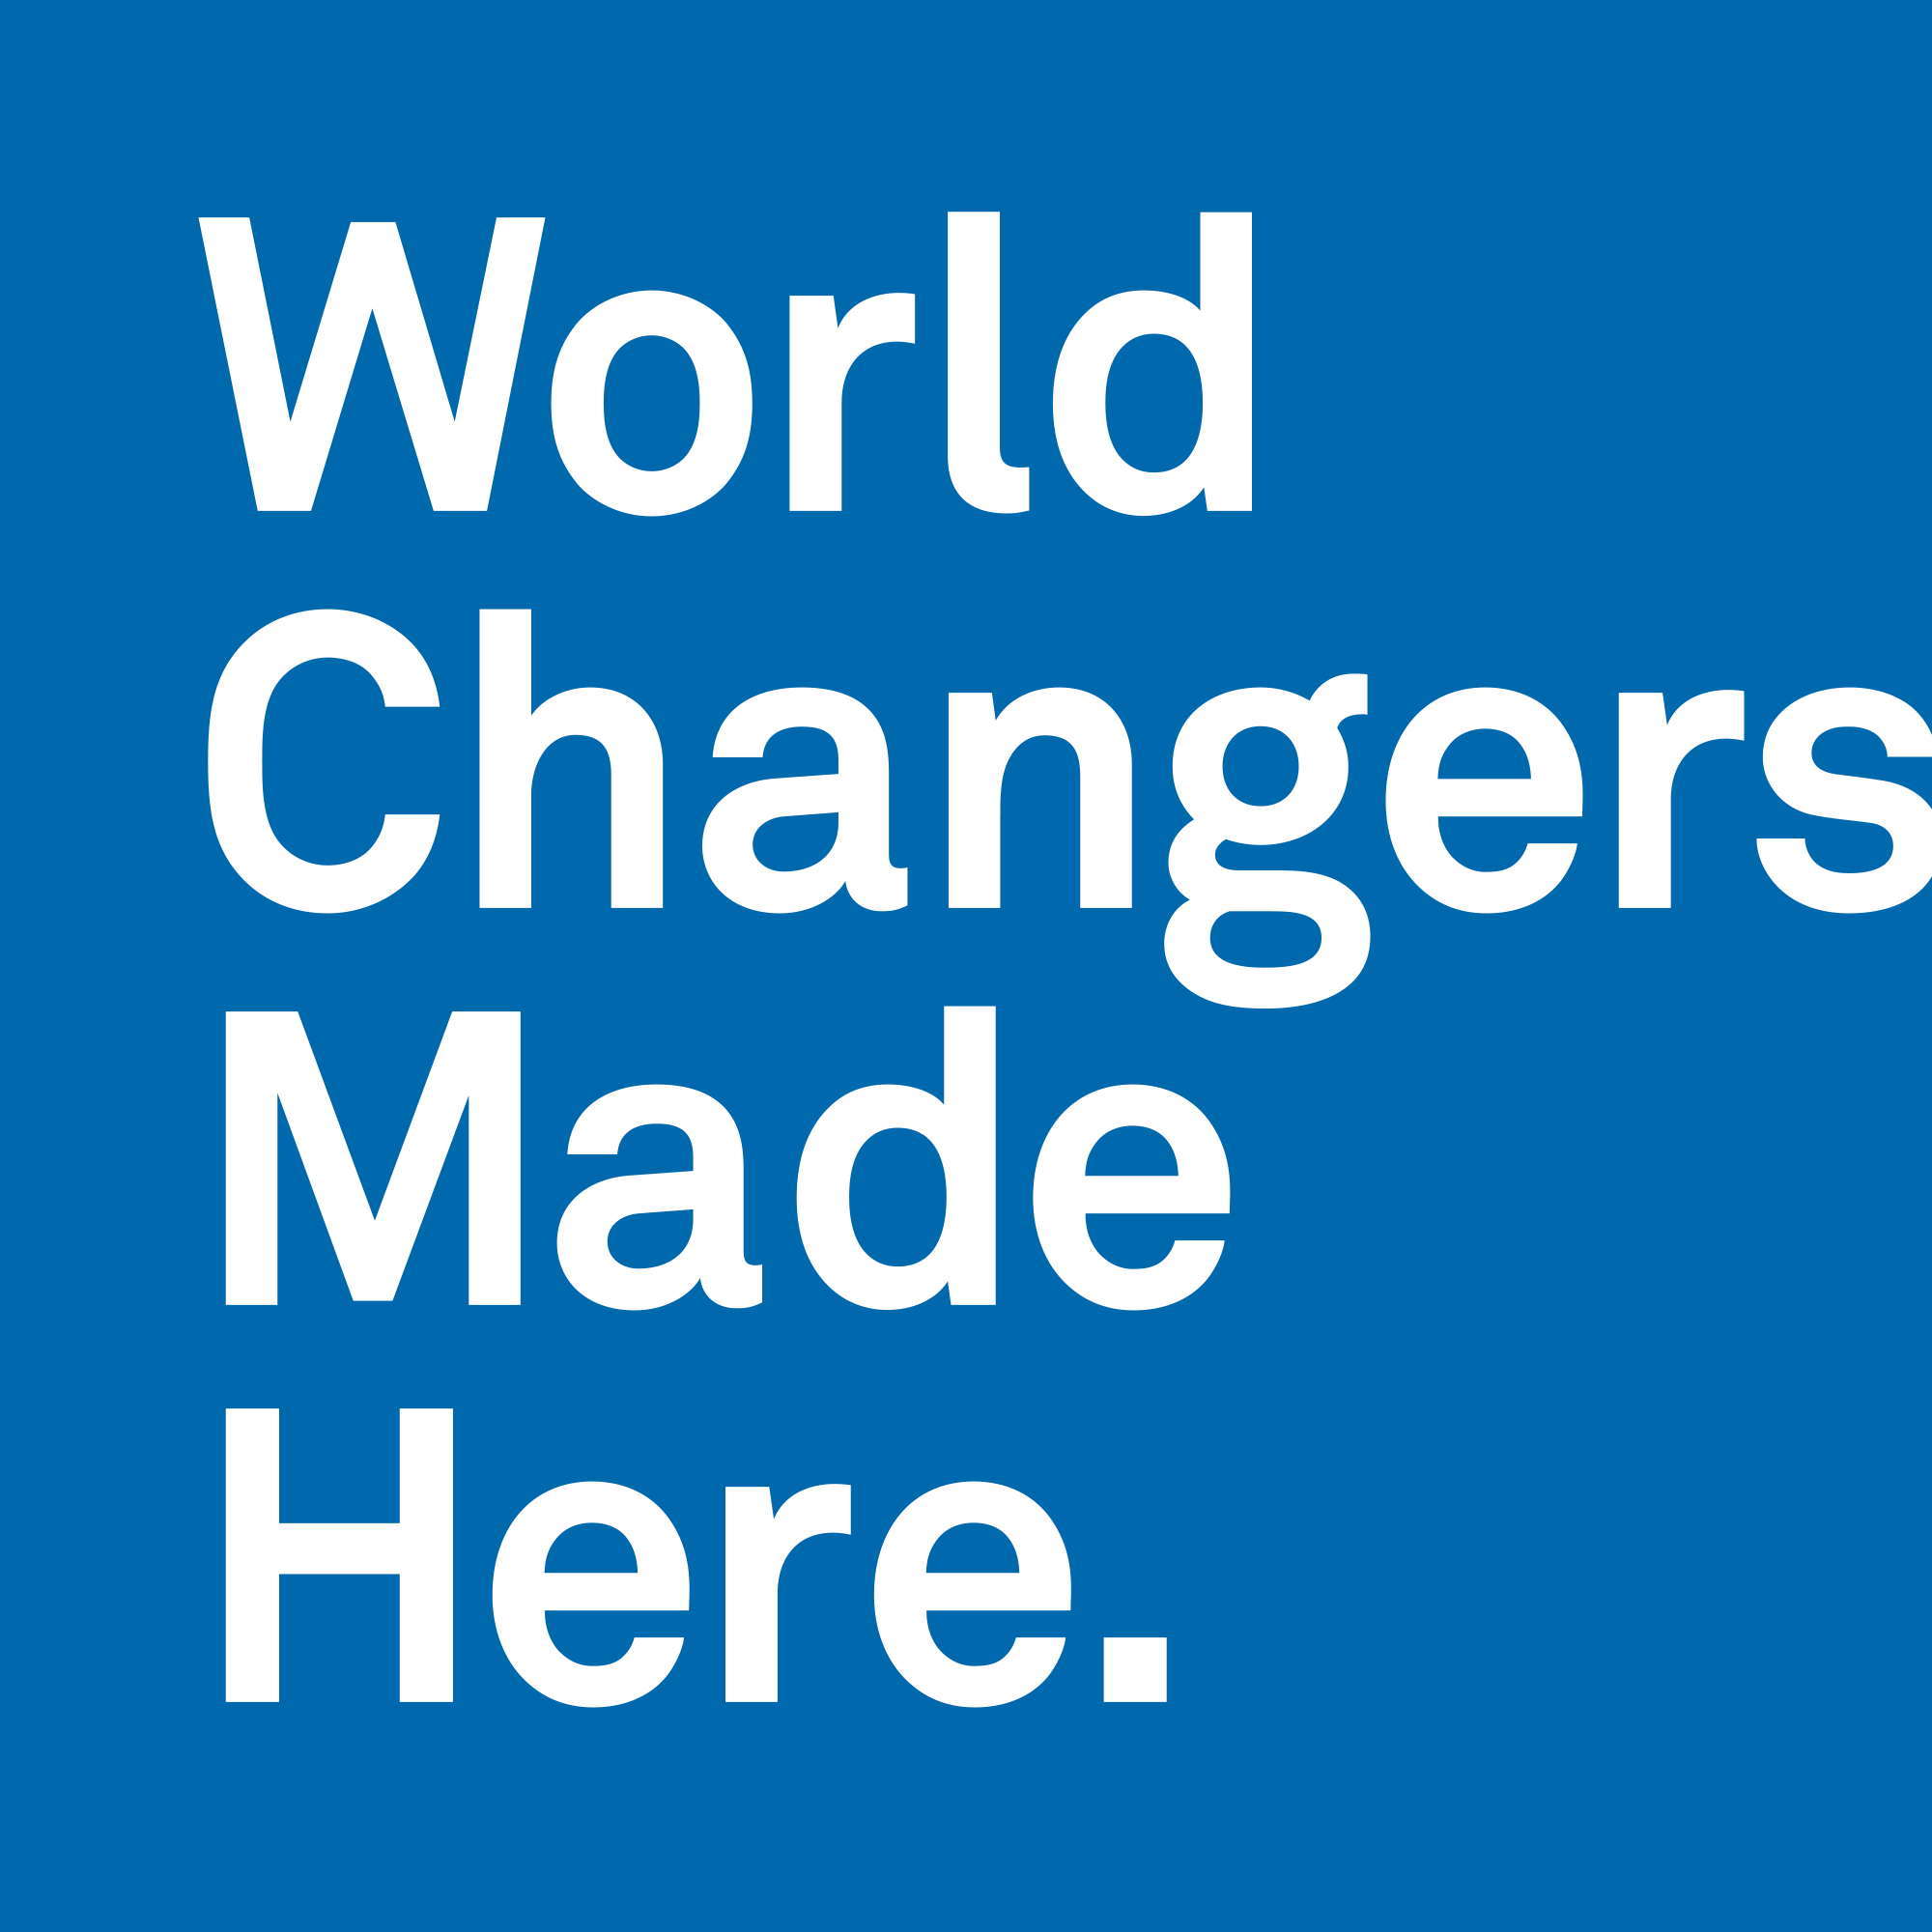 world_changers_vertical_blue